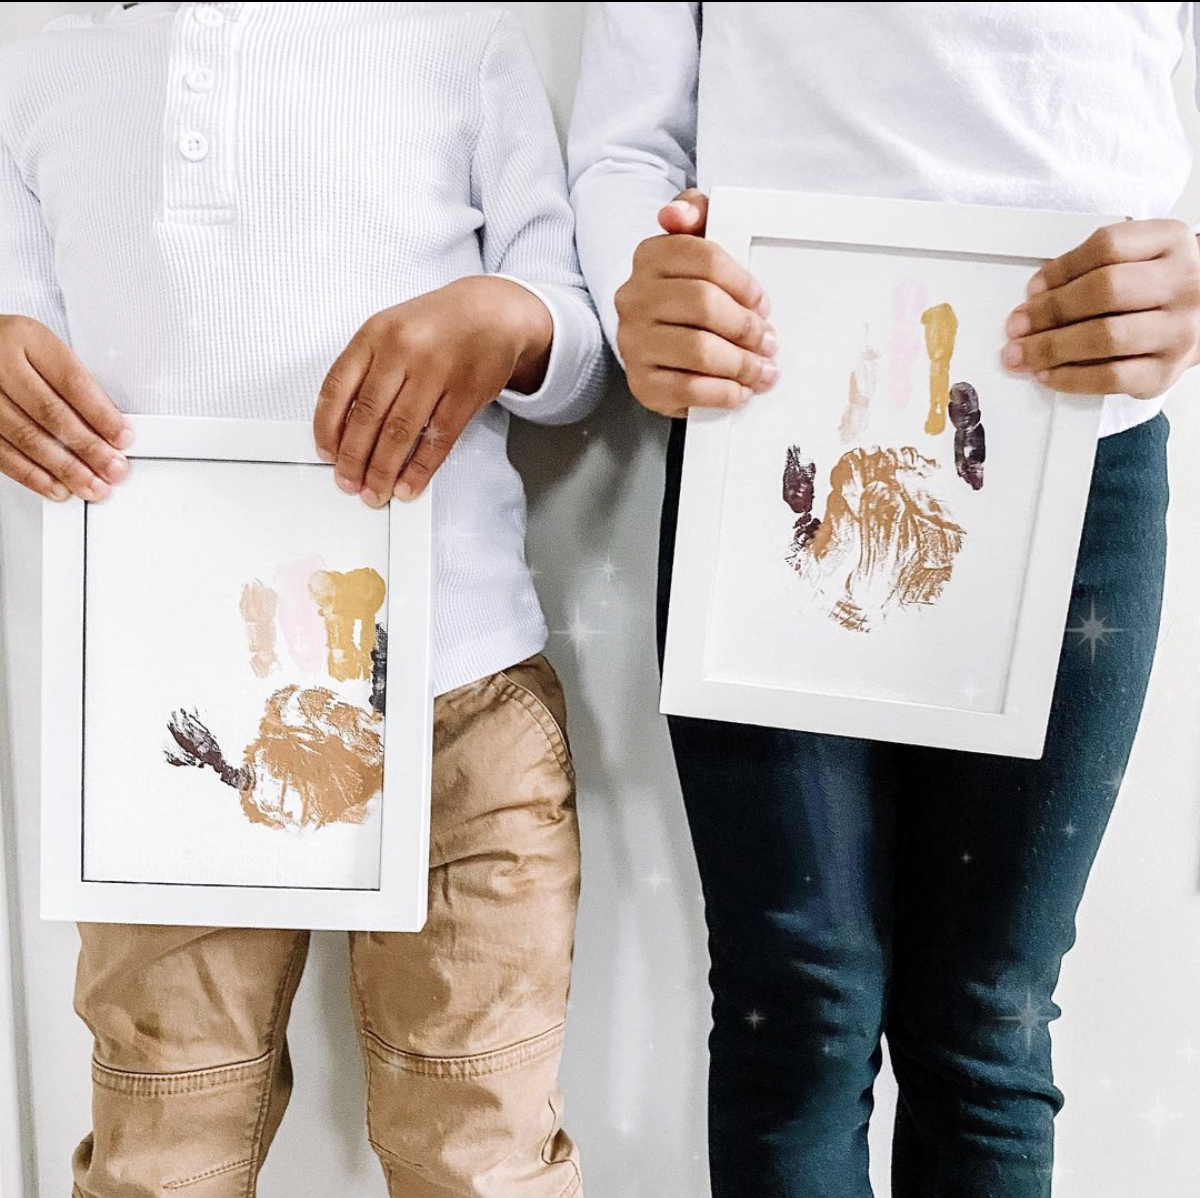 two kids holding framed artwork. Artwork is their handprint in various shades of brown